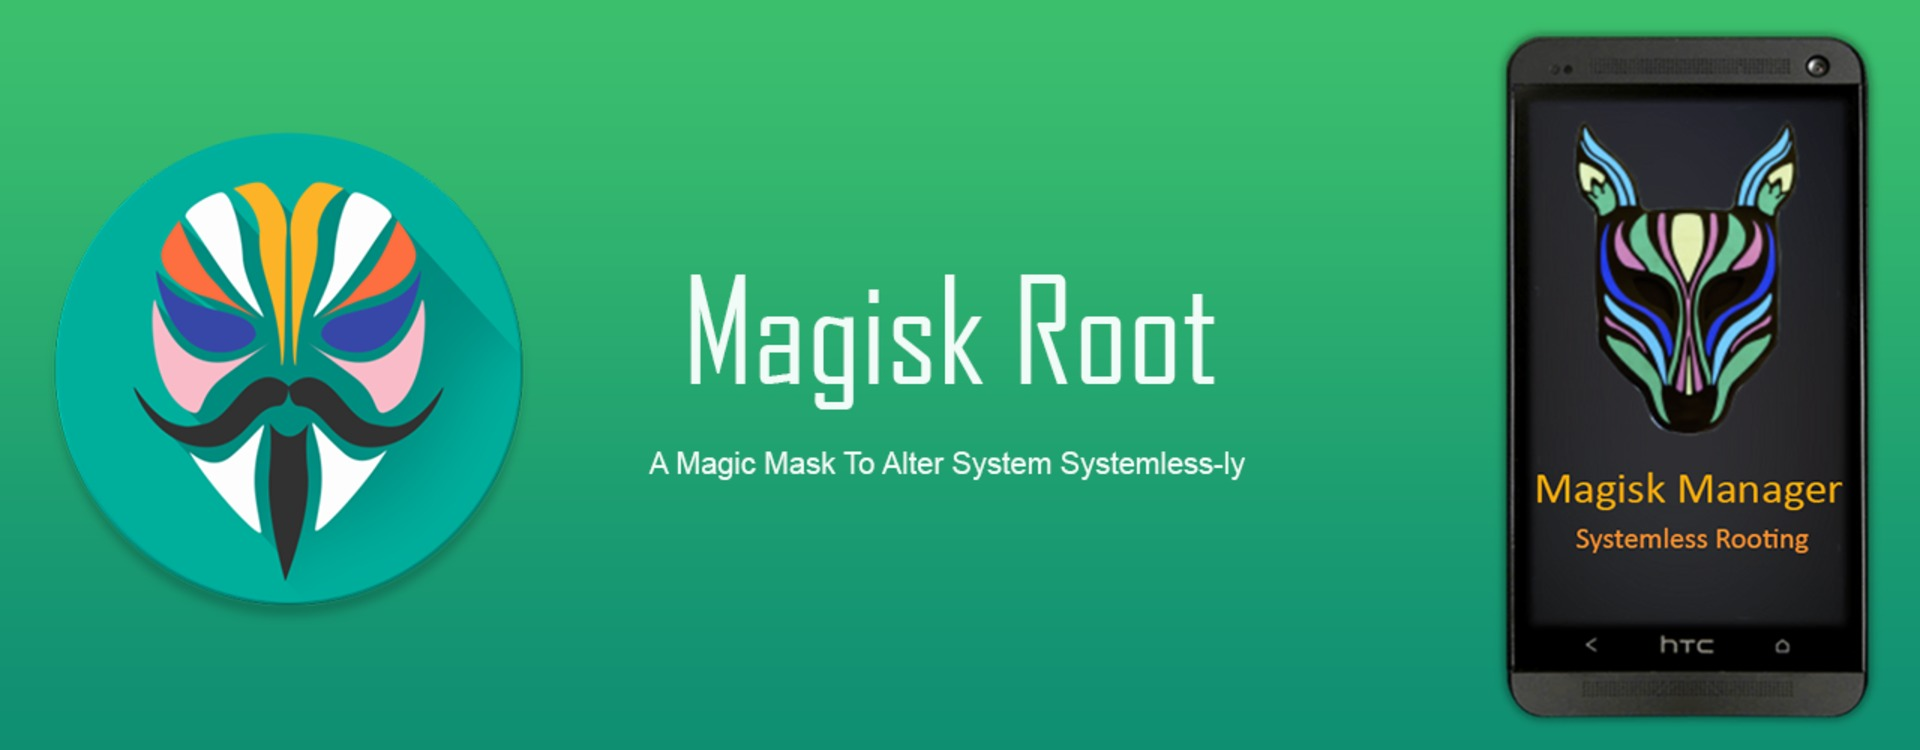 Magisk Root Free Download image